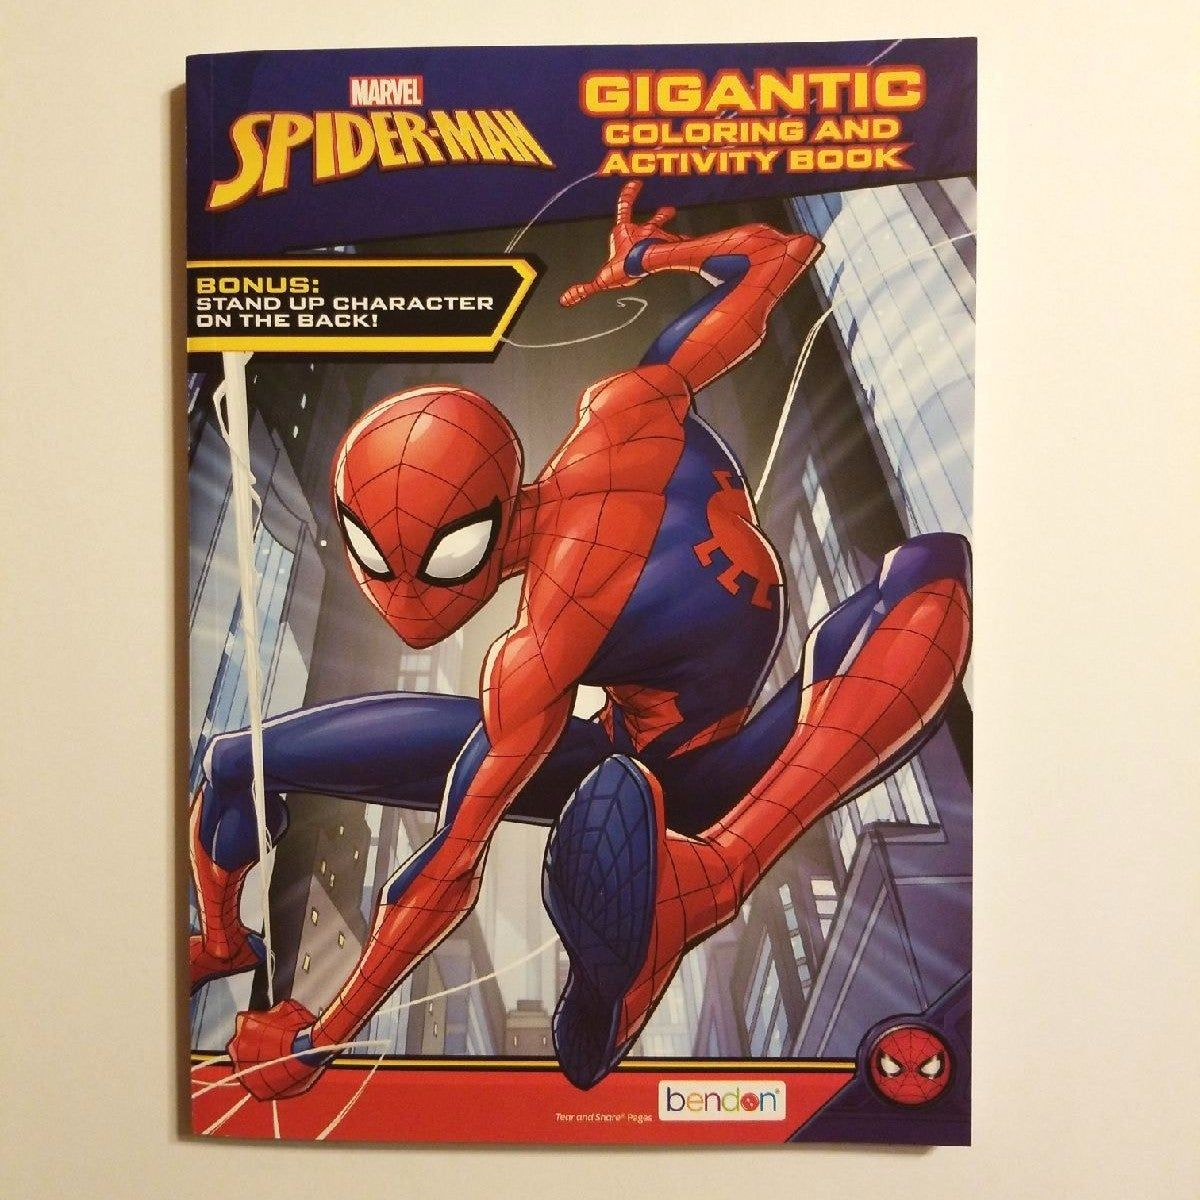 Marvel Spiderman 96 Page Coloring Activity Book This Book Has 96 Double Sided Pages There Are Coloring And Activit Book Activities Spiderman Color Activities